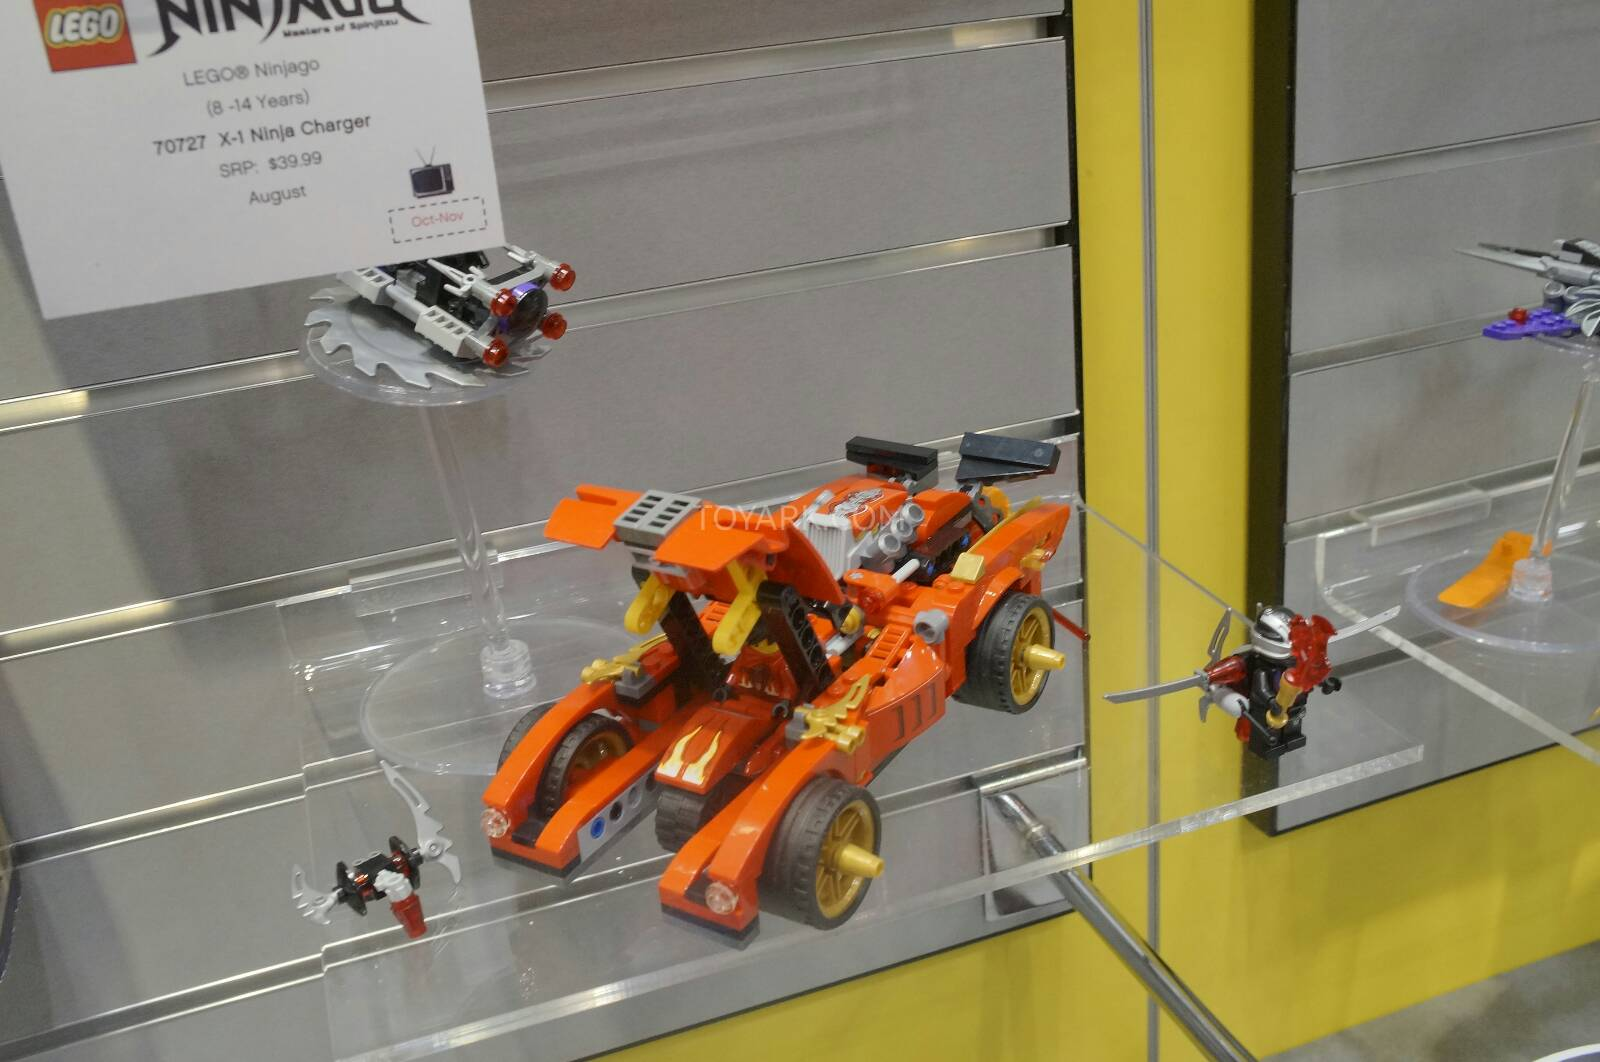 Toy-Fair-2014-LEGO-Ninjago-008.jpg